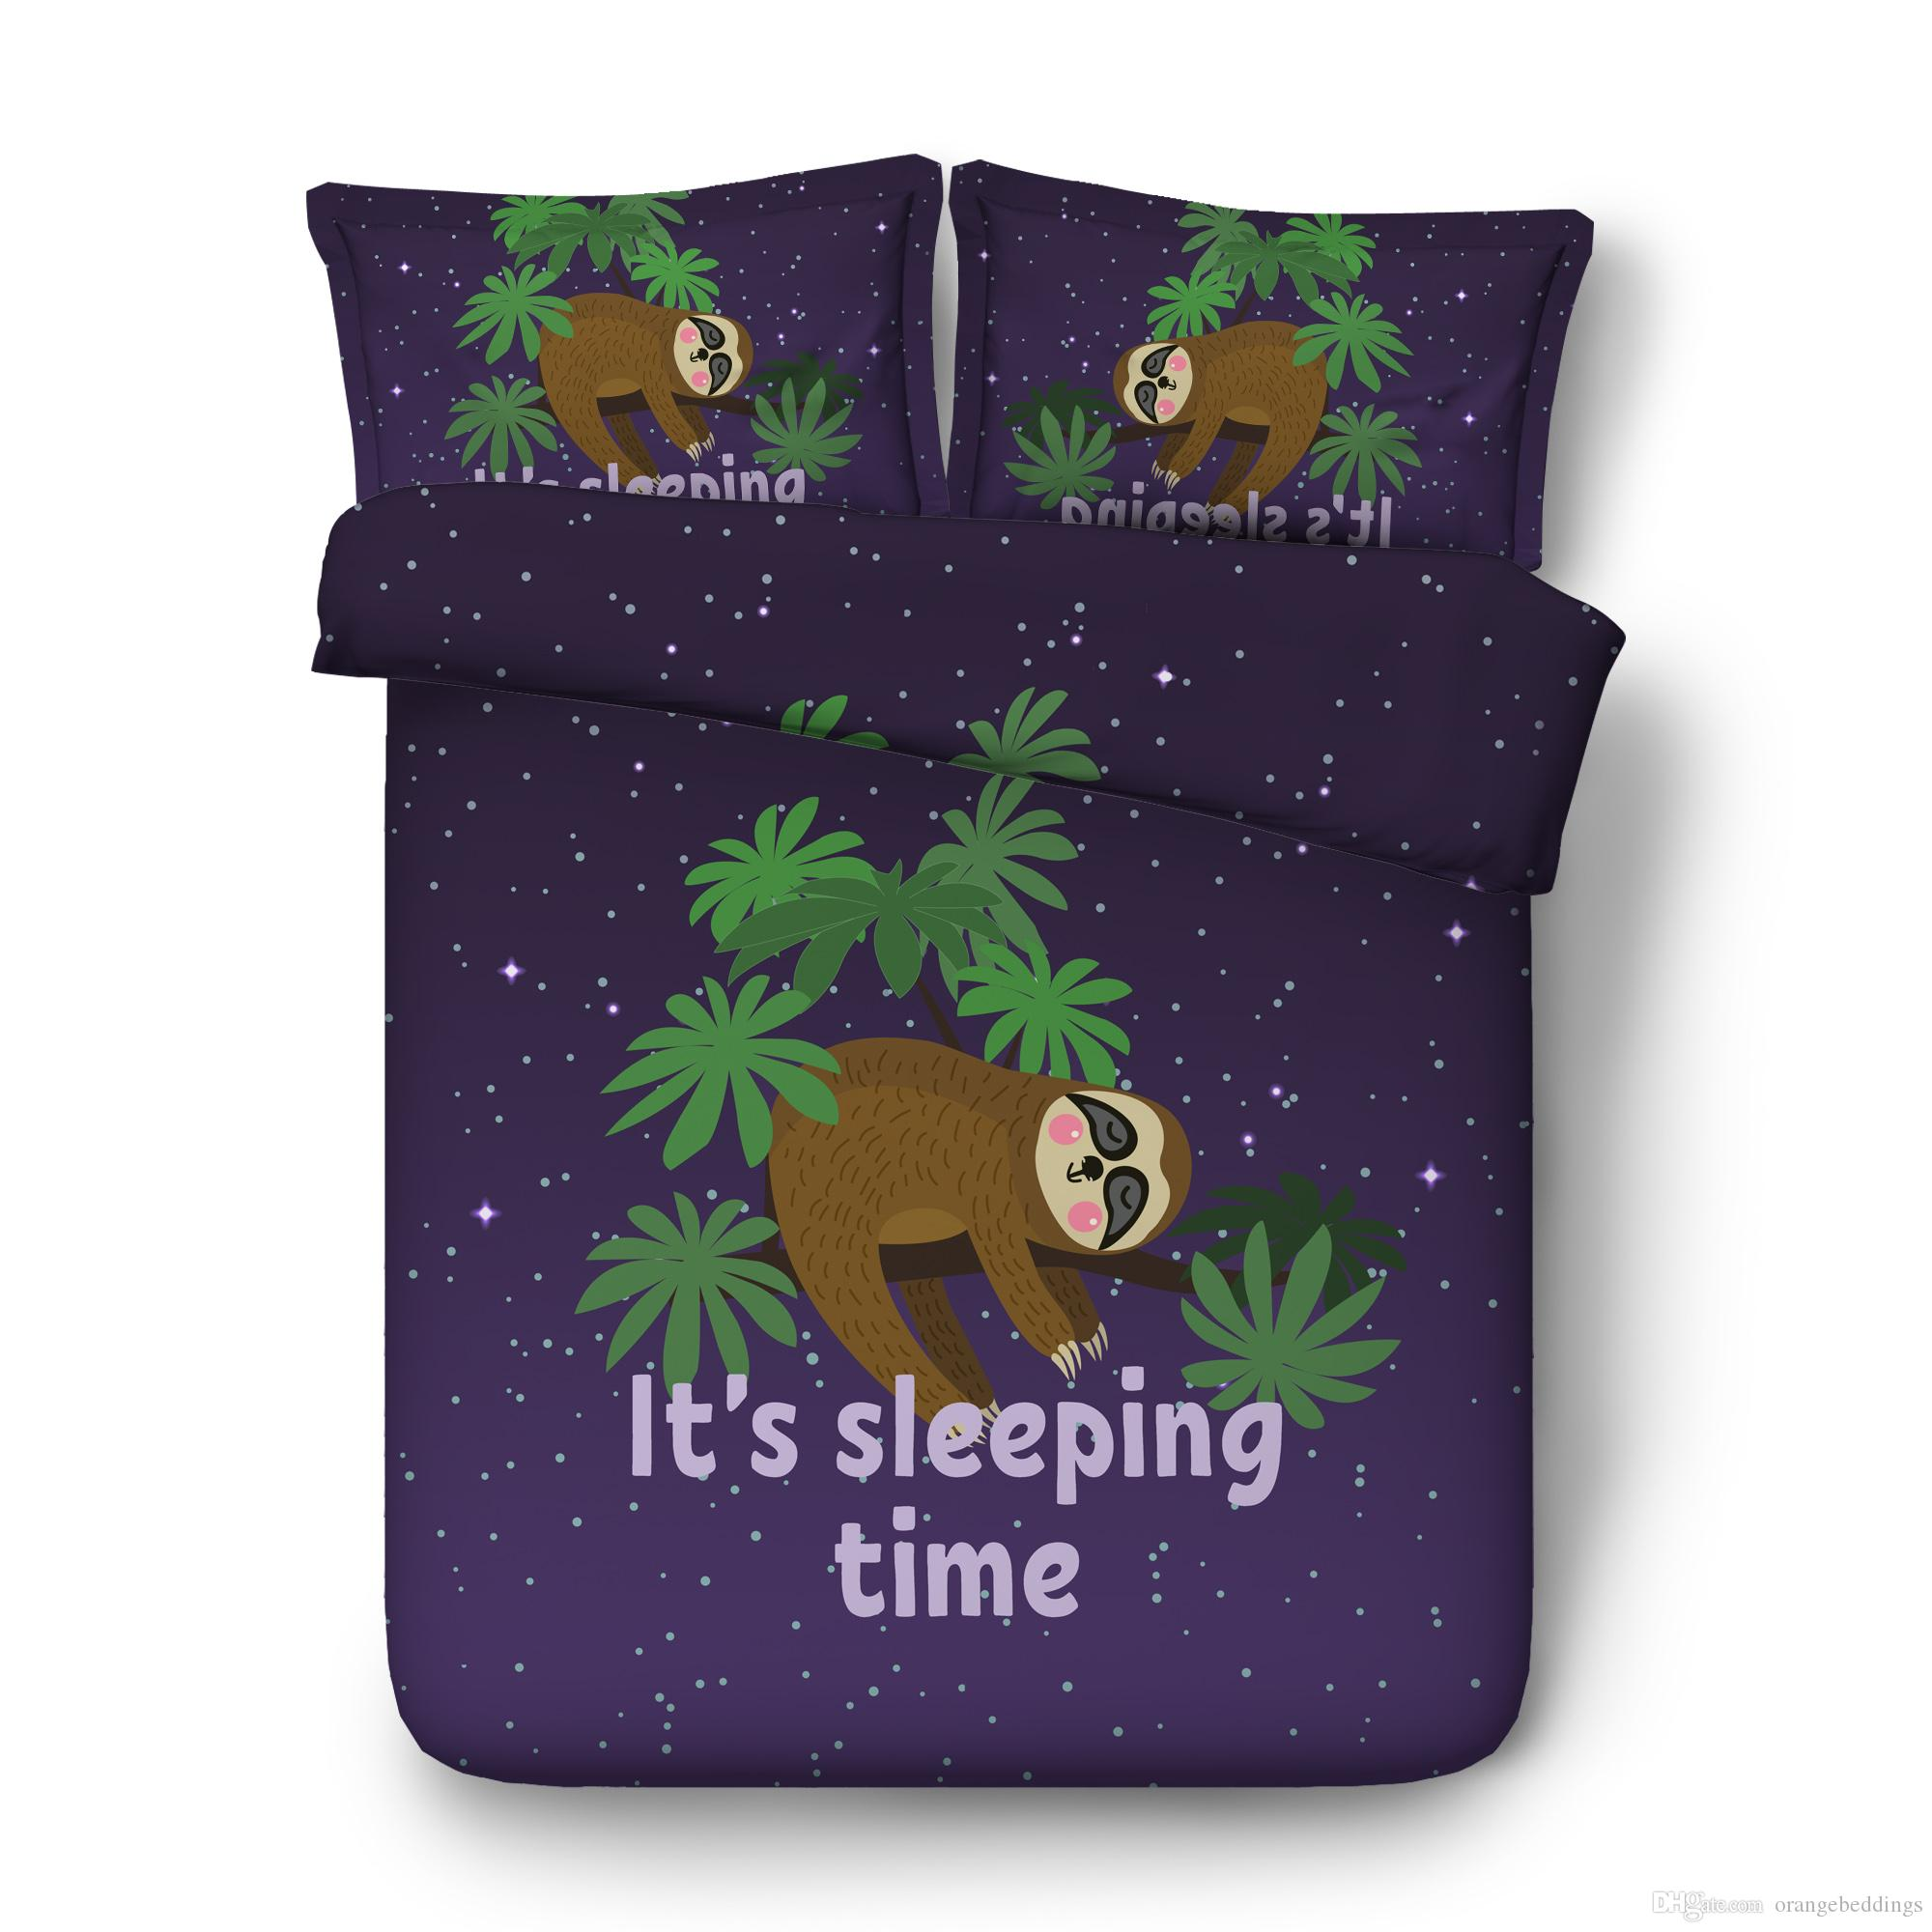 3 Piece Bedding Set With 2 Pillow Shams Lazy Sleepy Bear Theme Tribe Of Australian Sloths Bed Set Cute Smiling Sloth Duvet Cover Baby Sloths